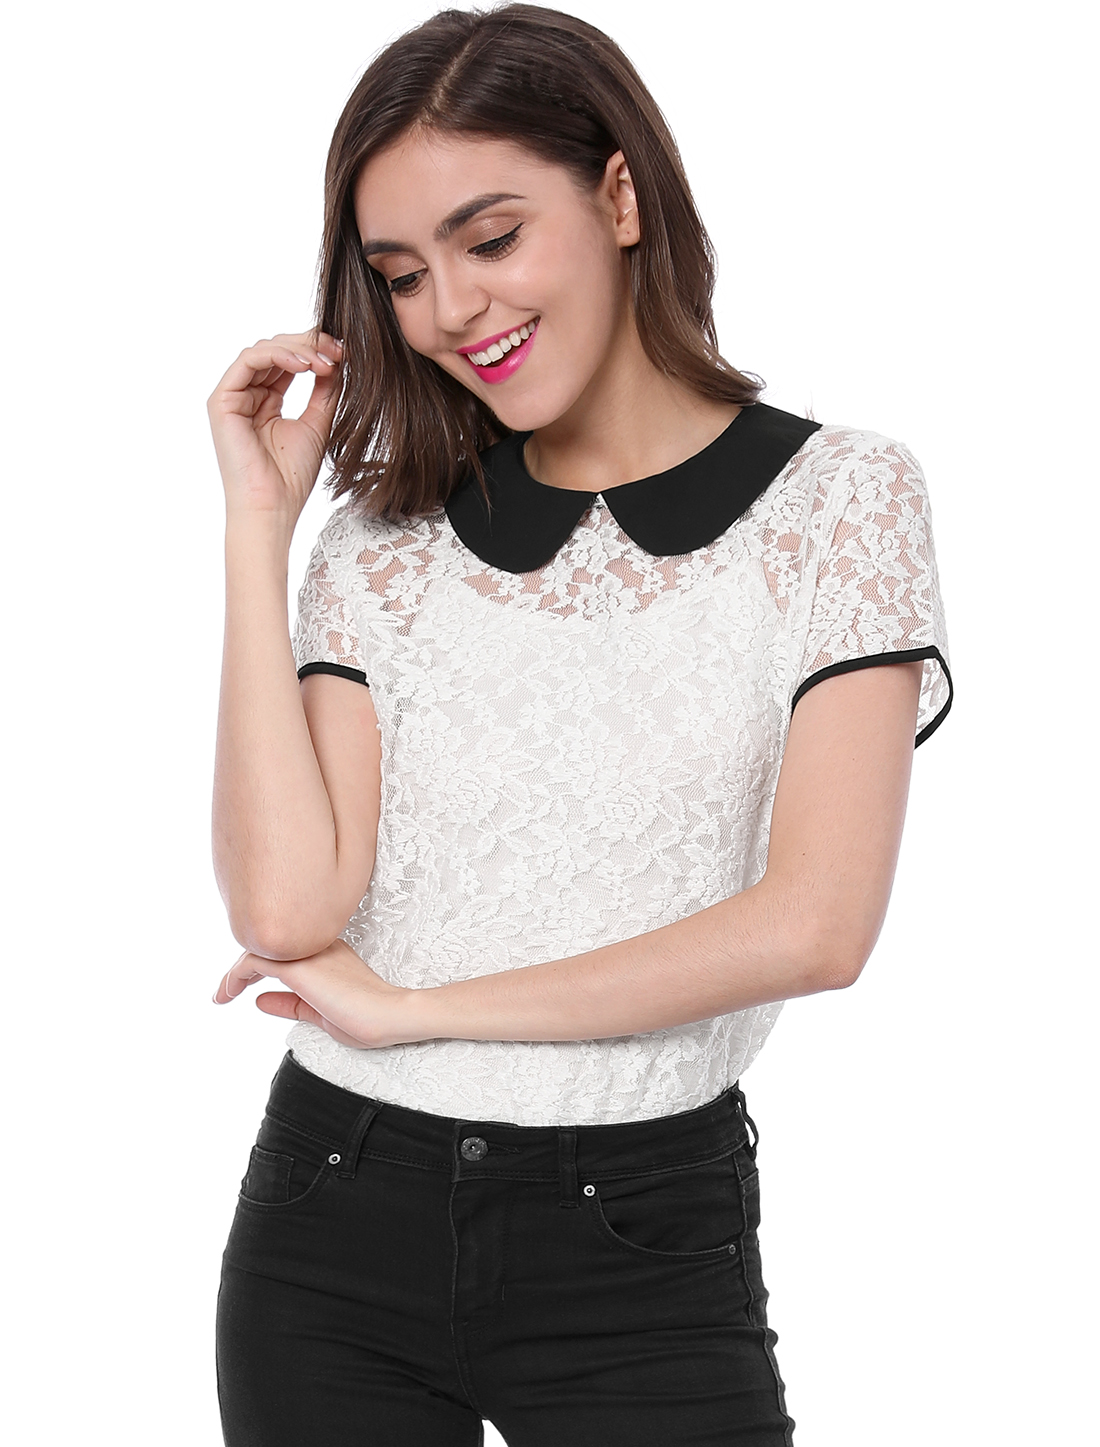 Allegra K Women See Through Contrast Peter Pan Collar Lace Top White XL